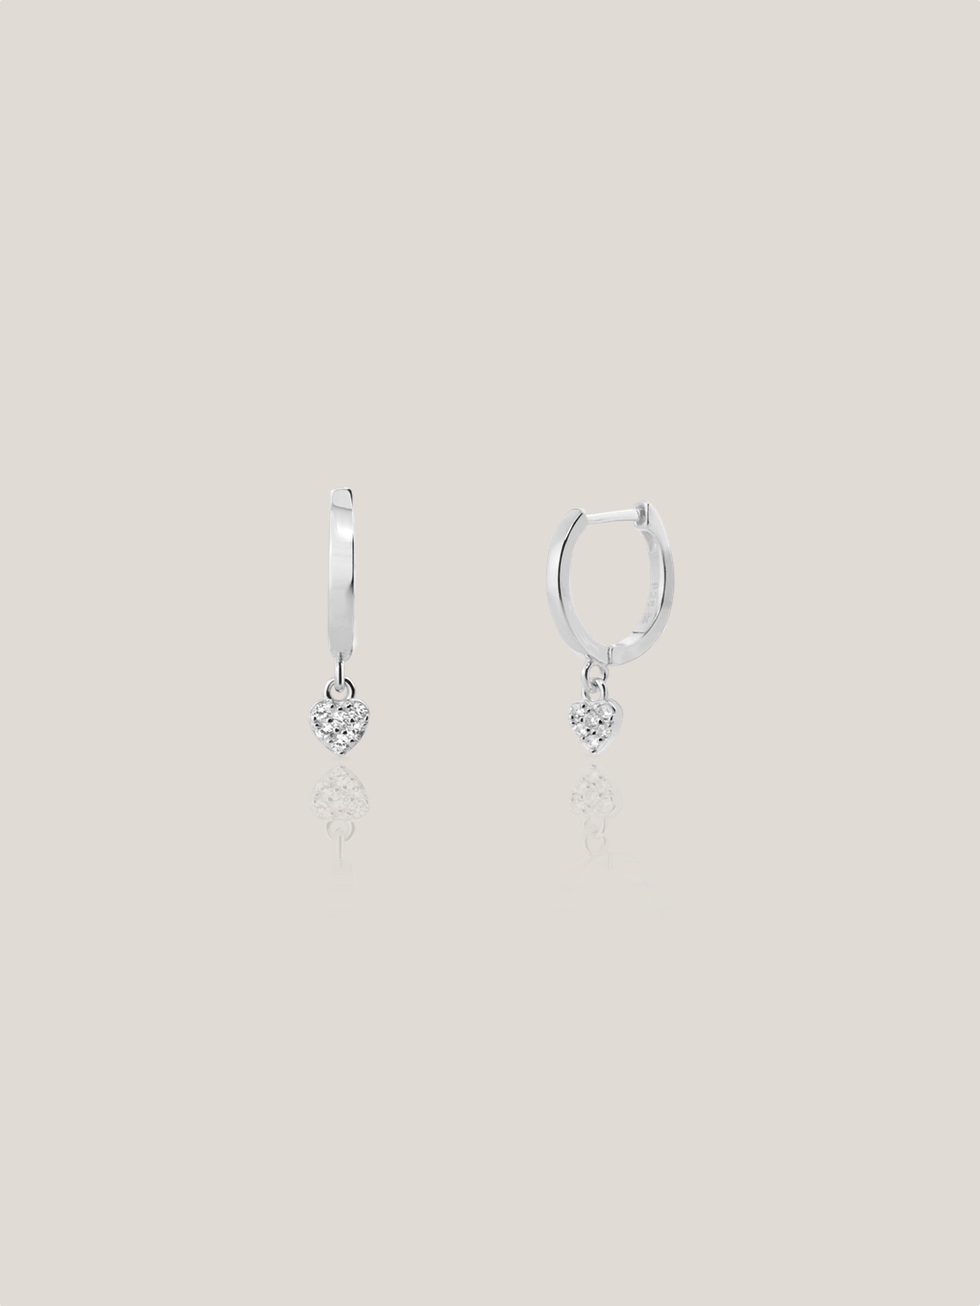 CORAZON silver earrings